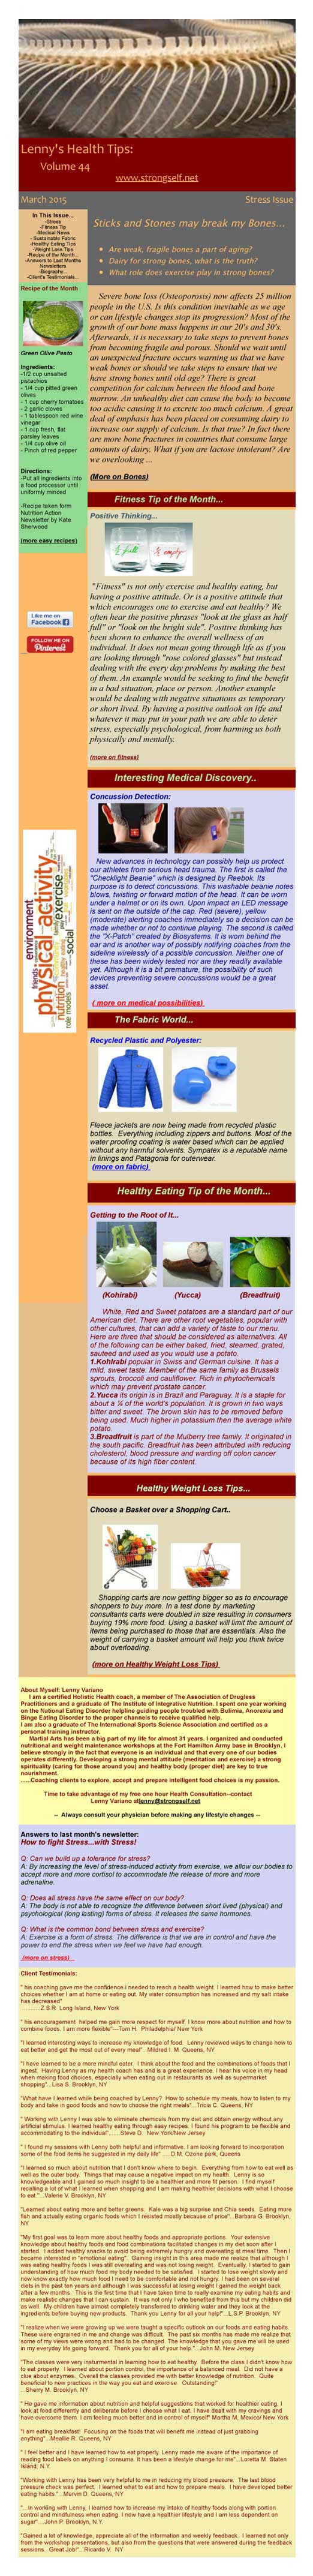 March 2015 Healthy Tips Newsletter from certified Holistic Health Counselor Lenny Variano